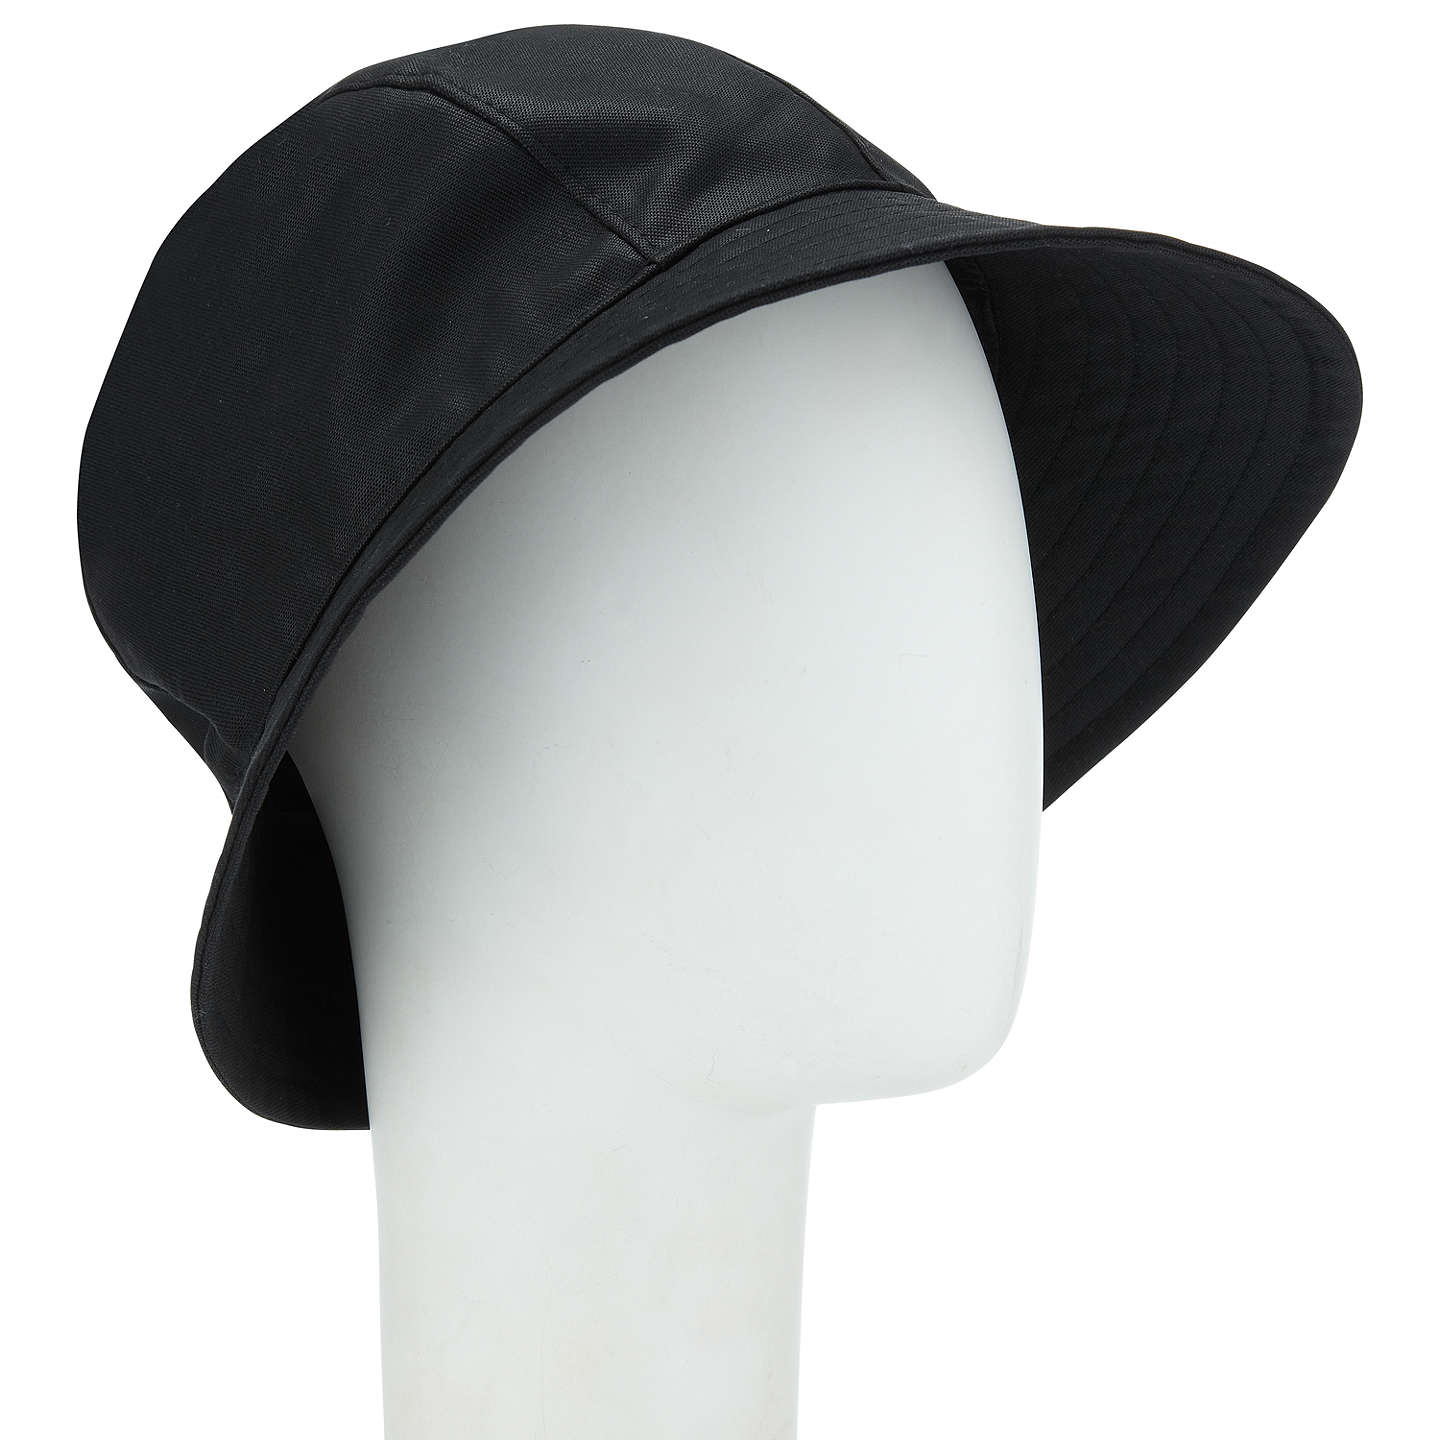 BuyJohn Lewis Waxed Trench Hat, Black Online at johnlewis.com